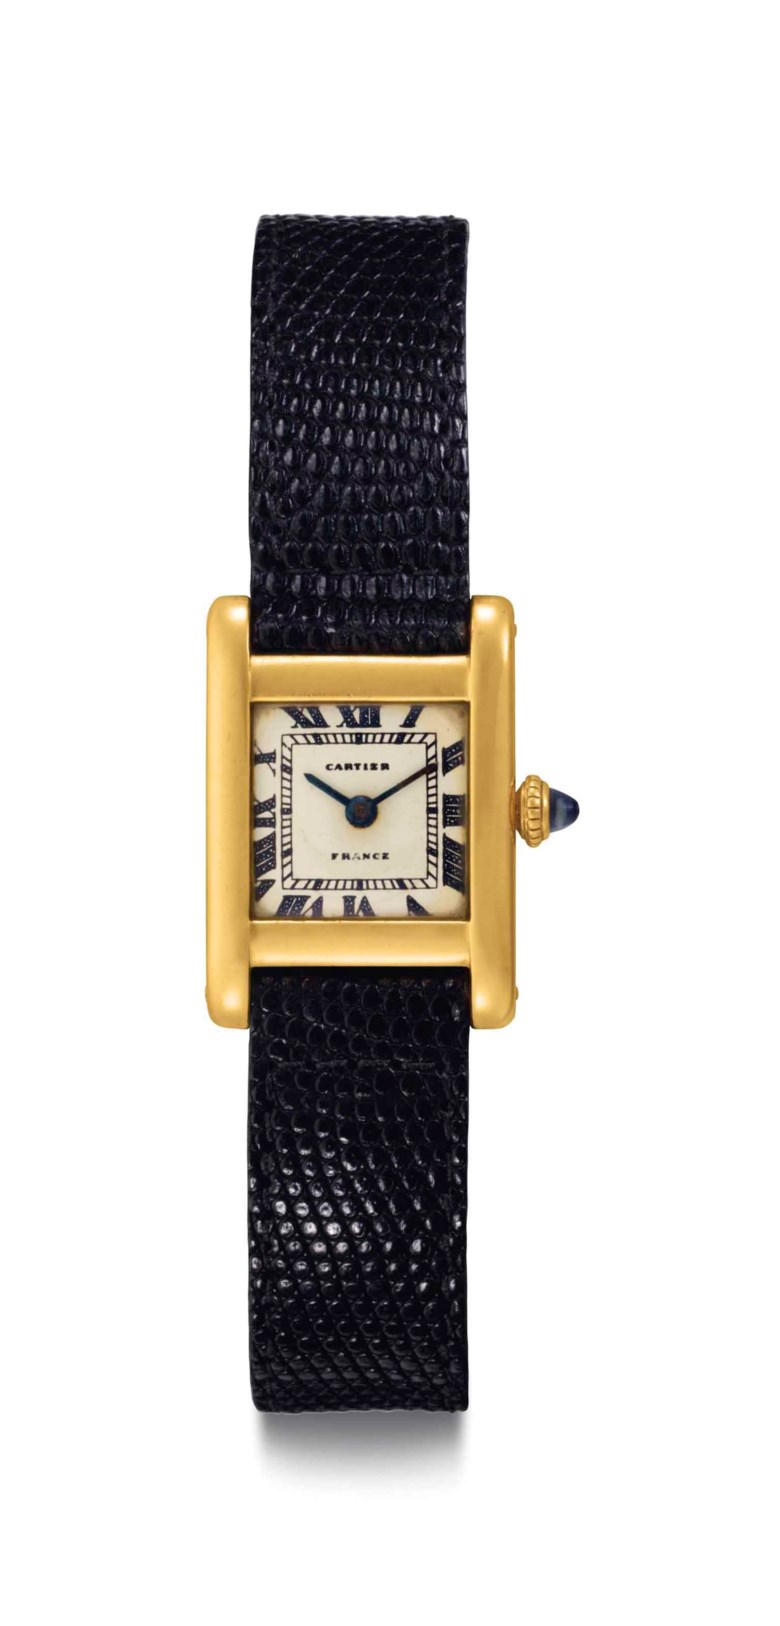 Cartier. A fine and historically important 18k gold square-shaped wristwatch, belonging to Jacqueline Kennedy Onassis. Signed Cartier, Tank Model, movement no. 2117860, case no. 44374, manufactured in 1962. Sold for $379,500 on 21 June 2017 at Christie's in New York